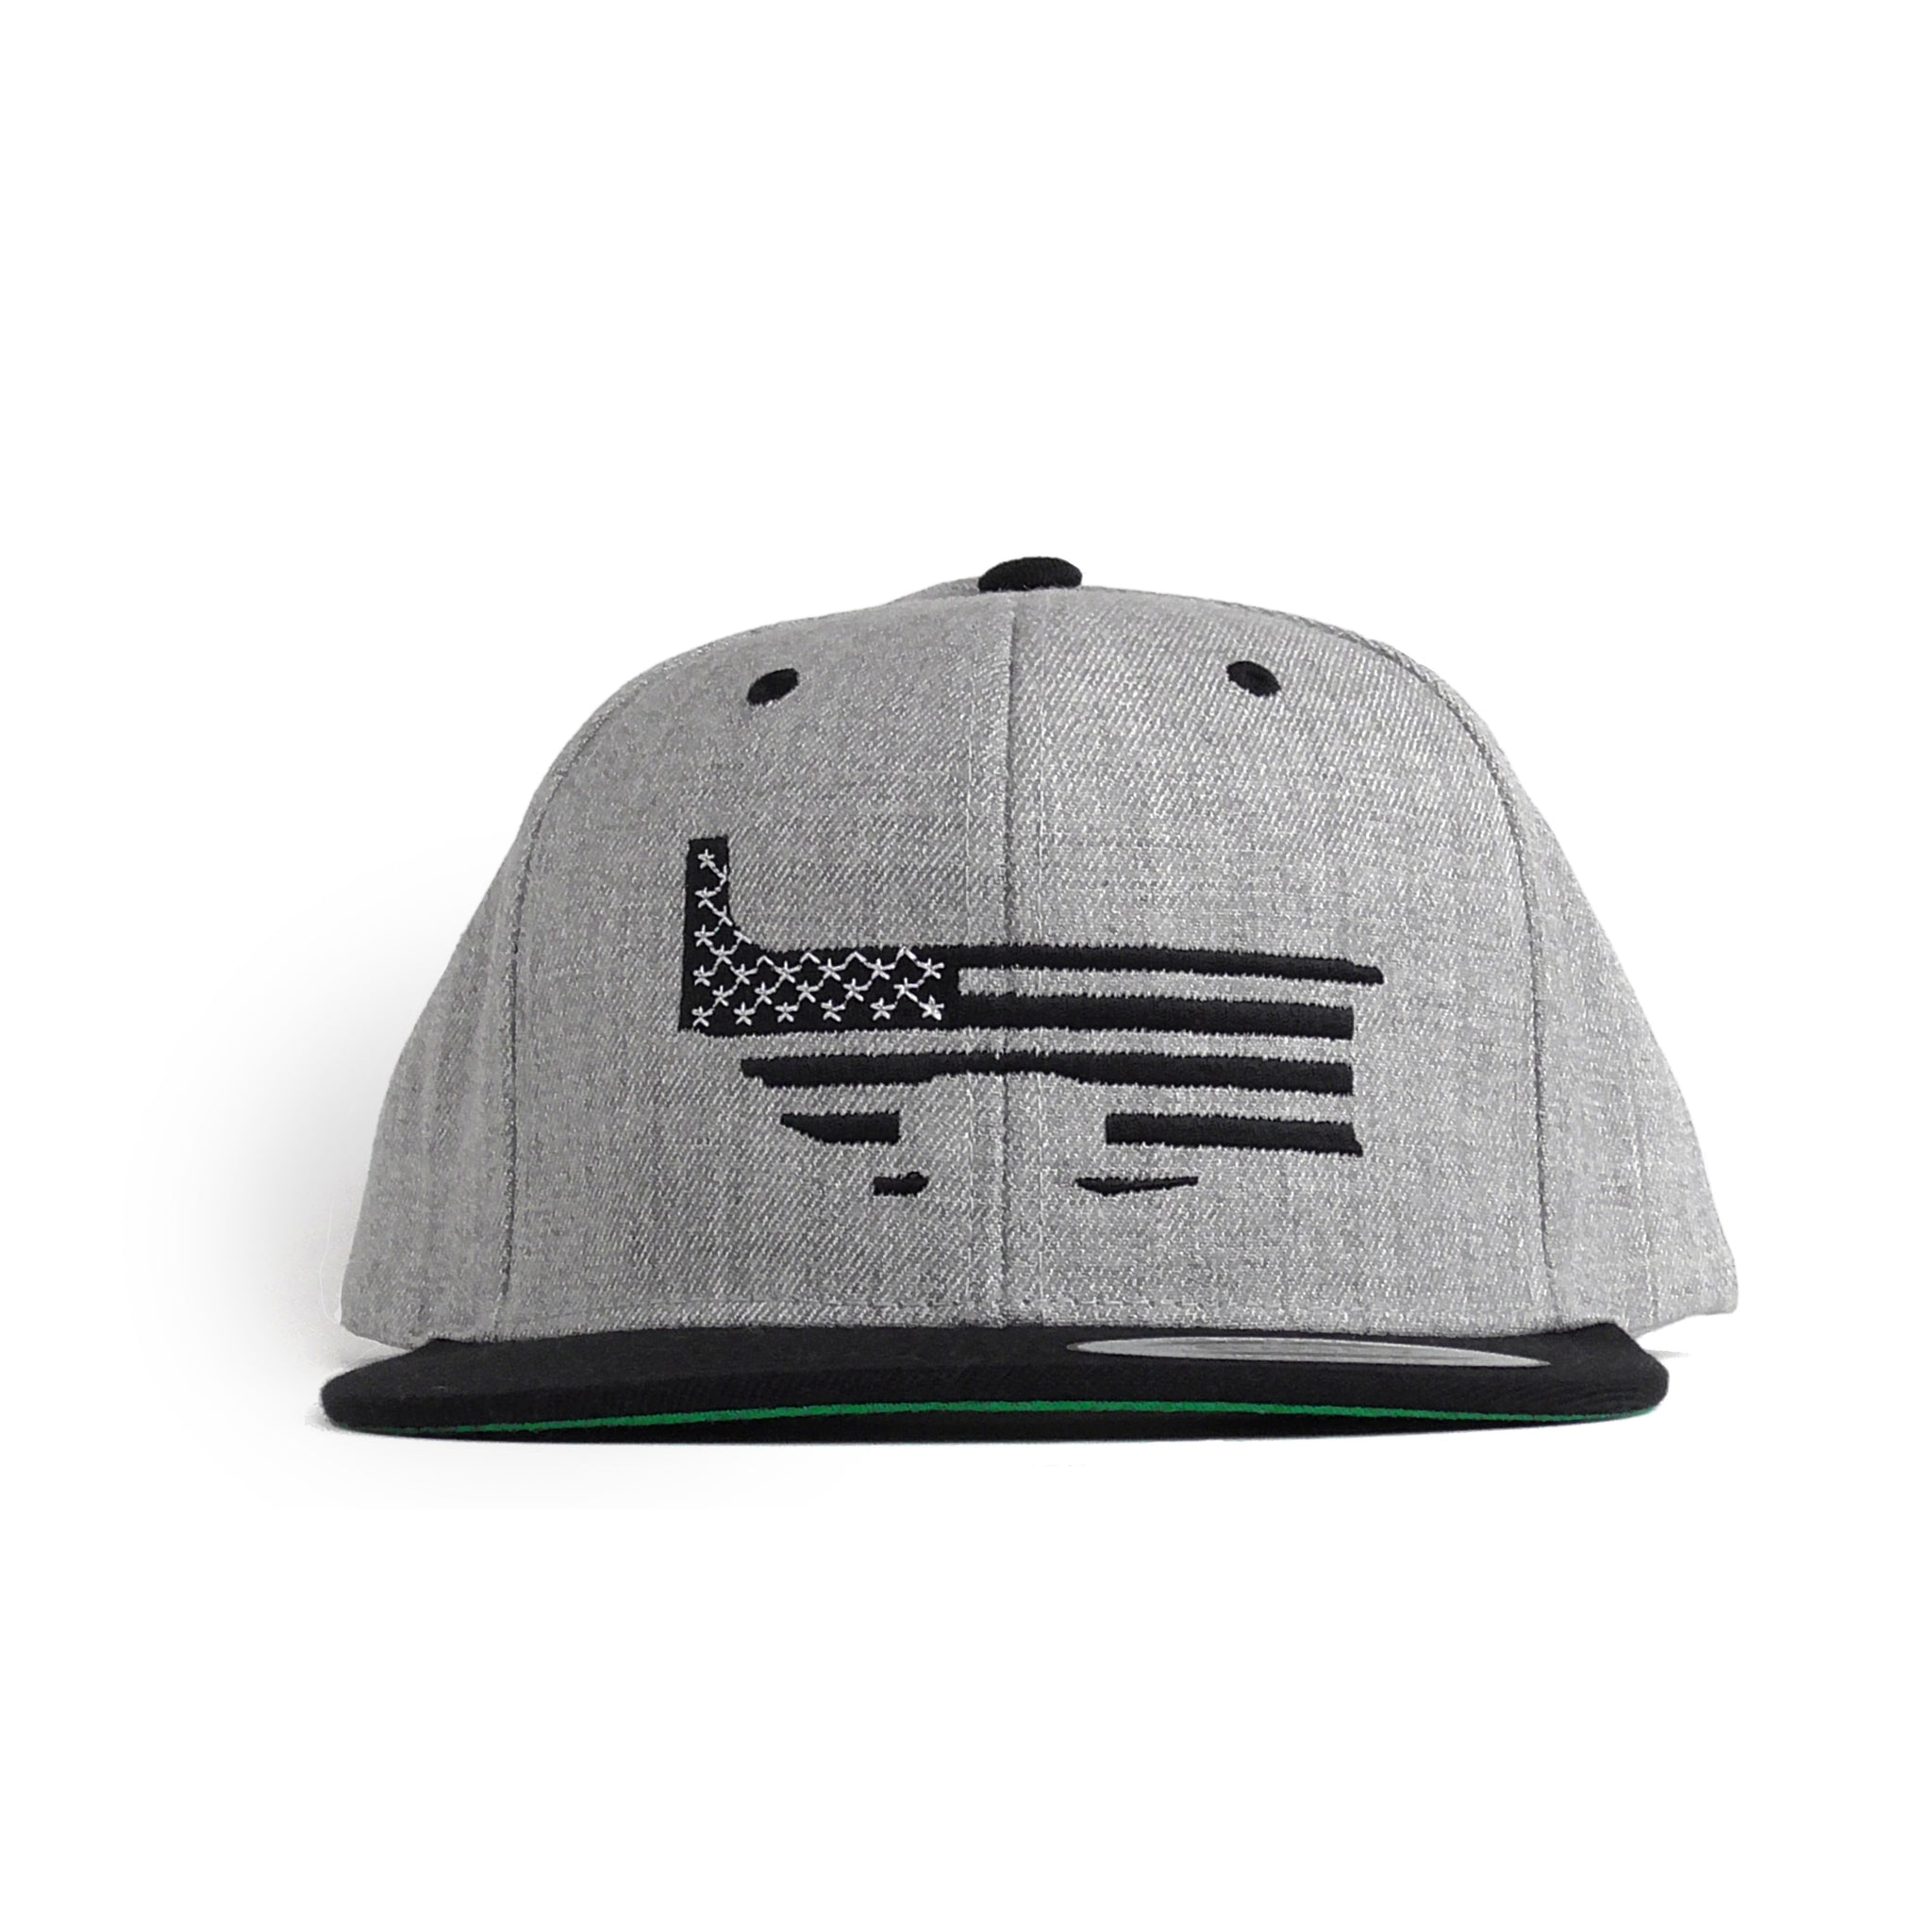 Patriot Lower Hat